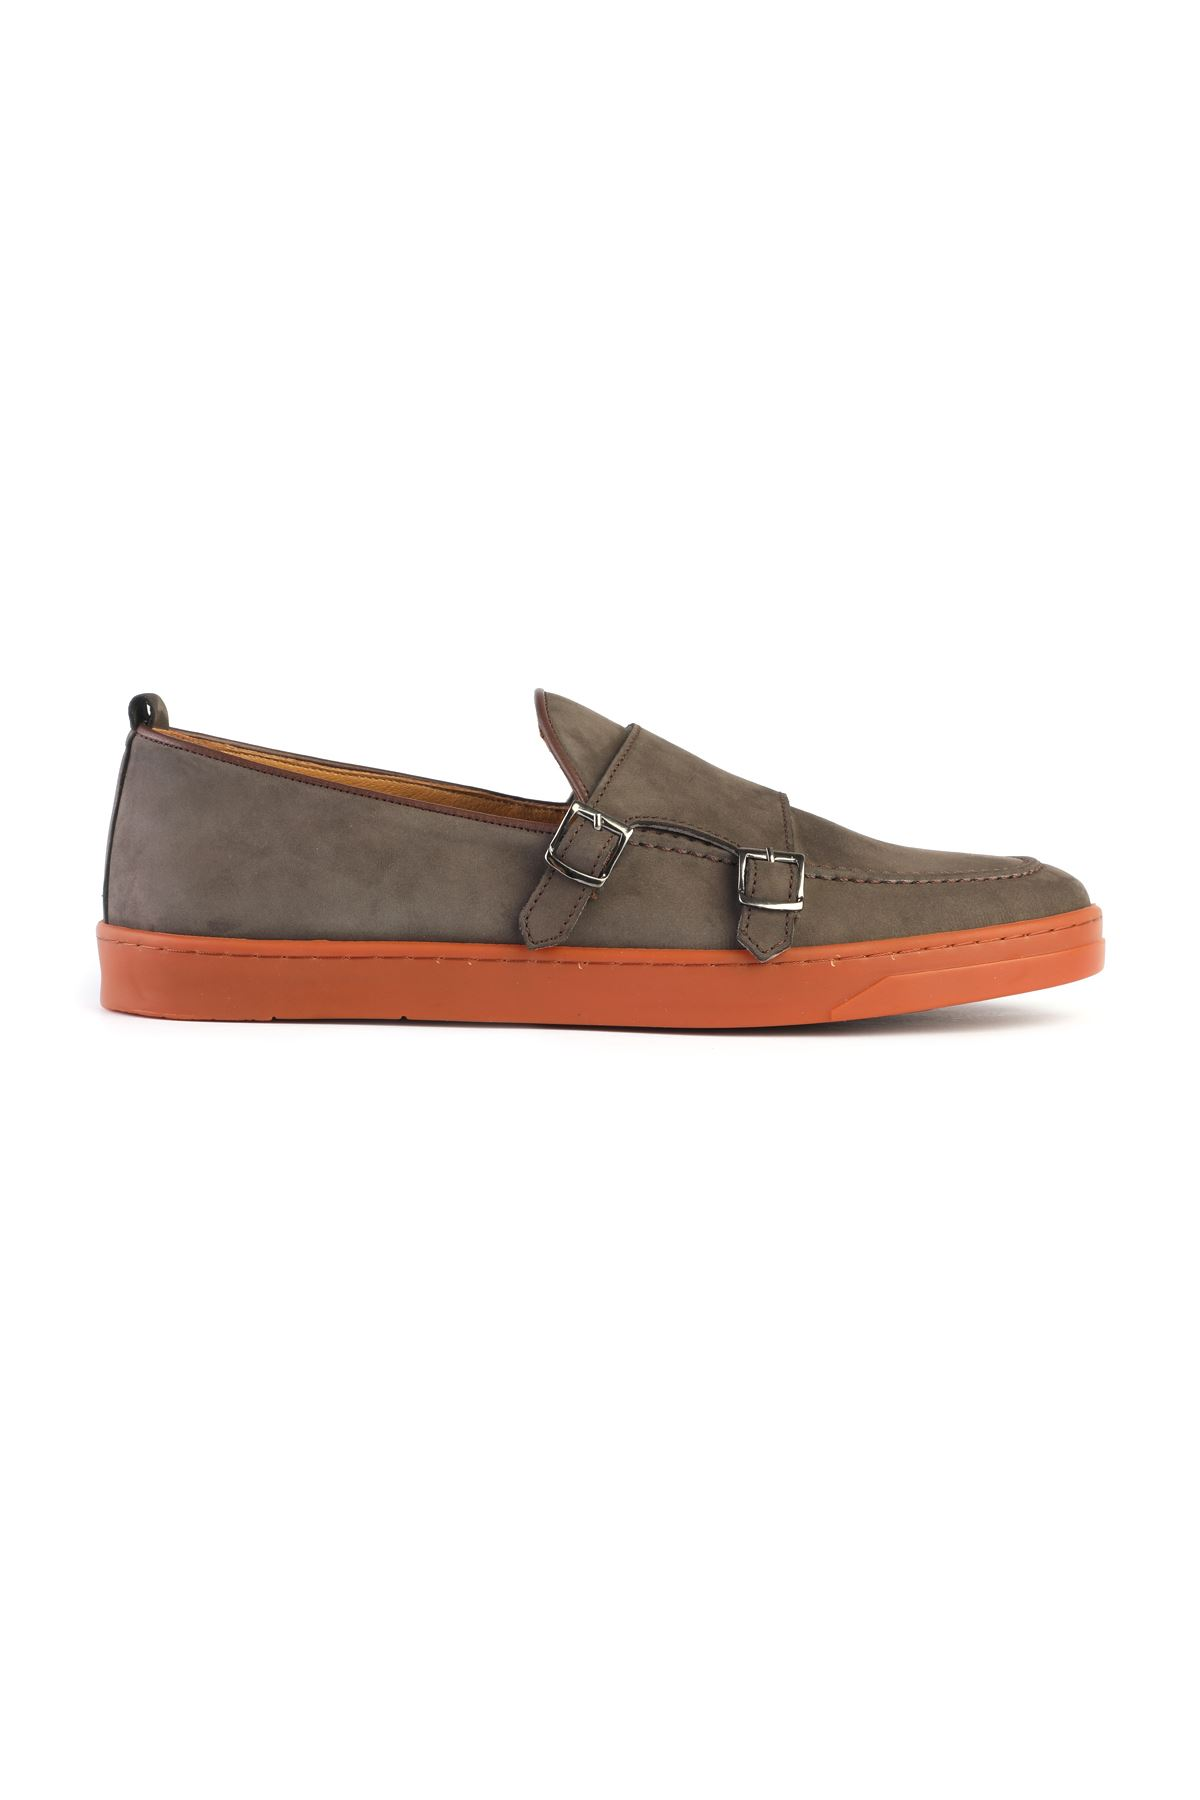 Libero 3357 Brown Loafers